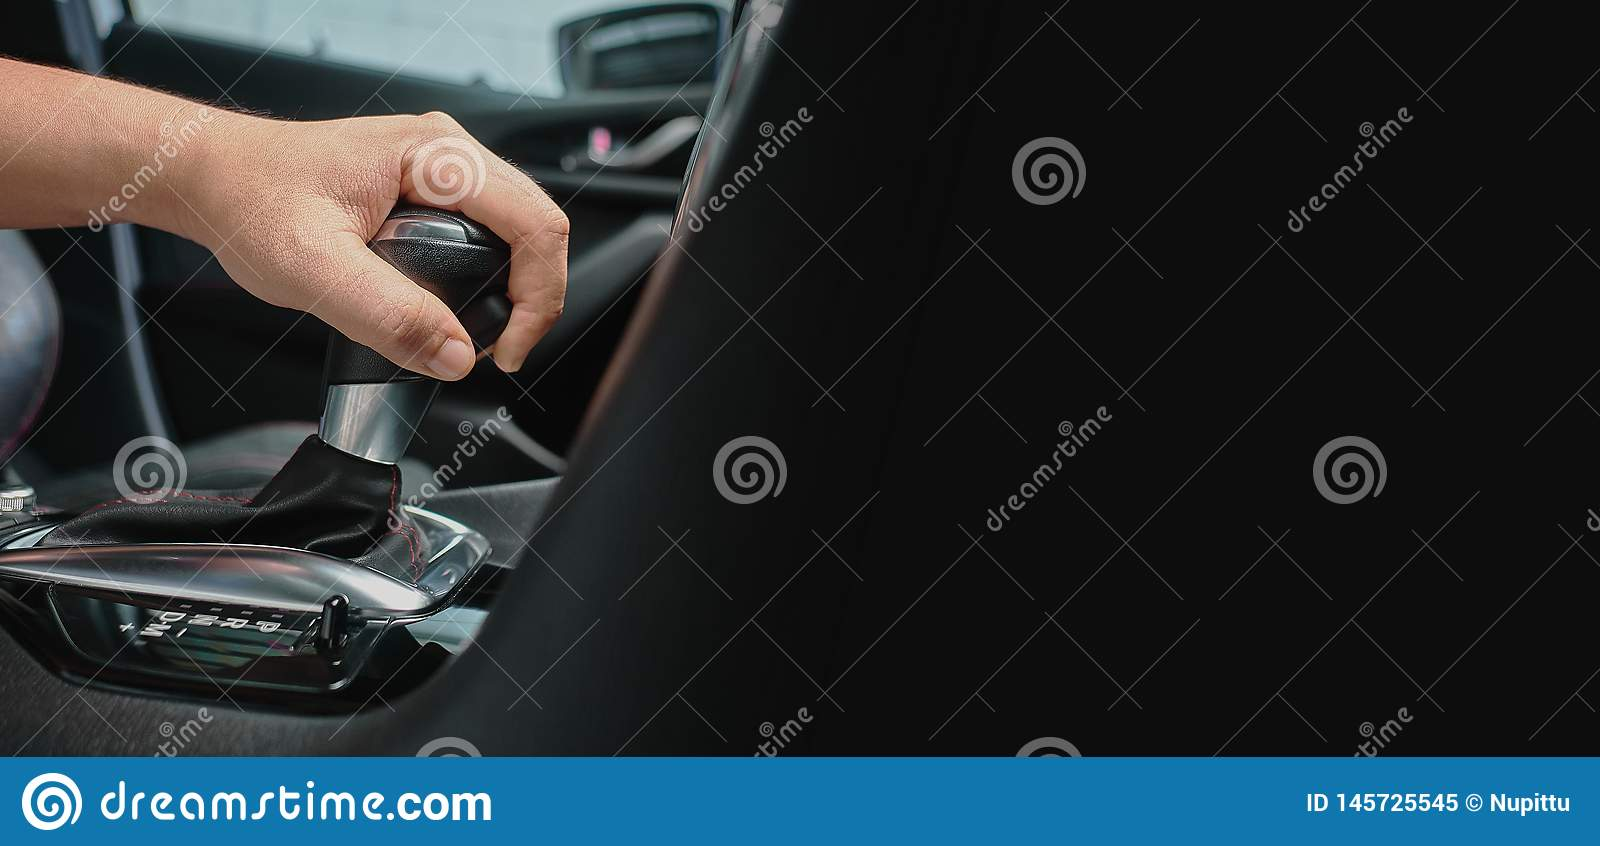 hand hold automatic transmission car lever.